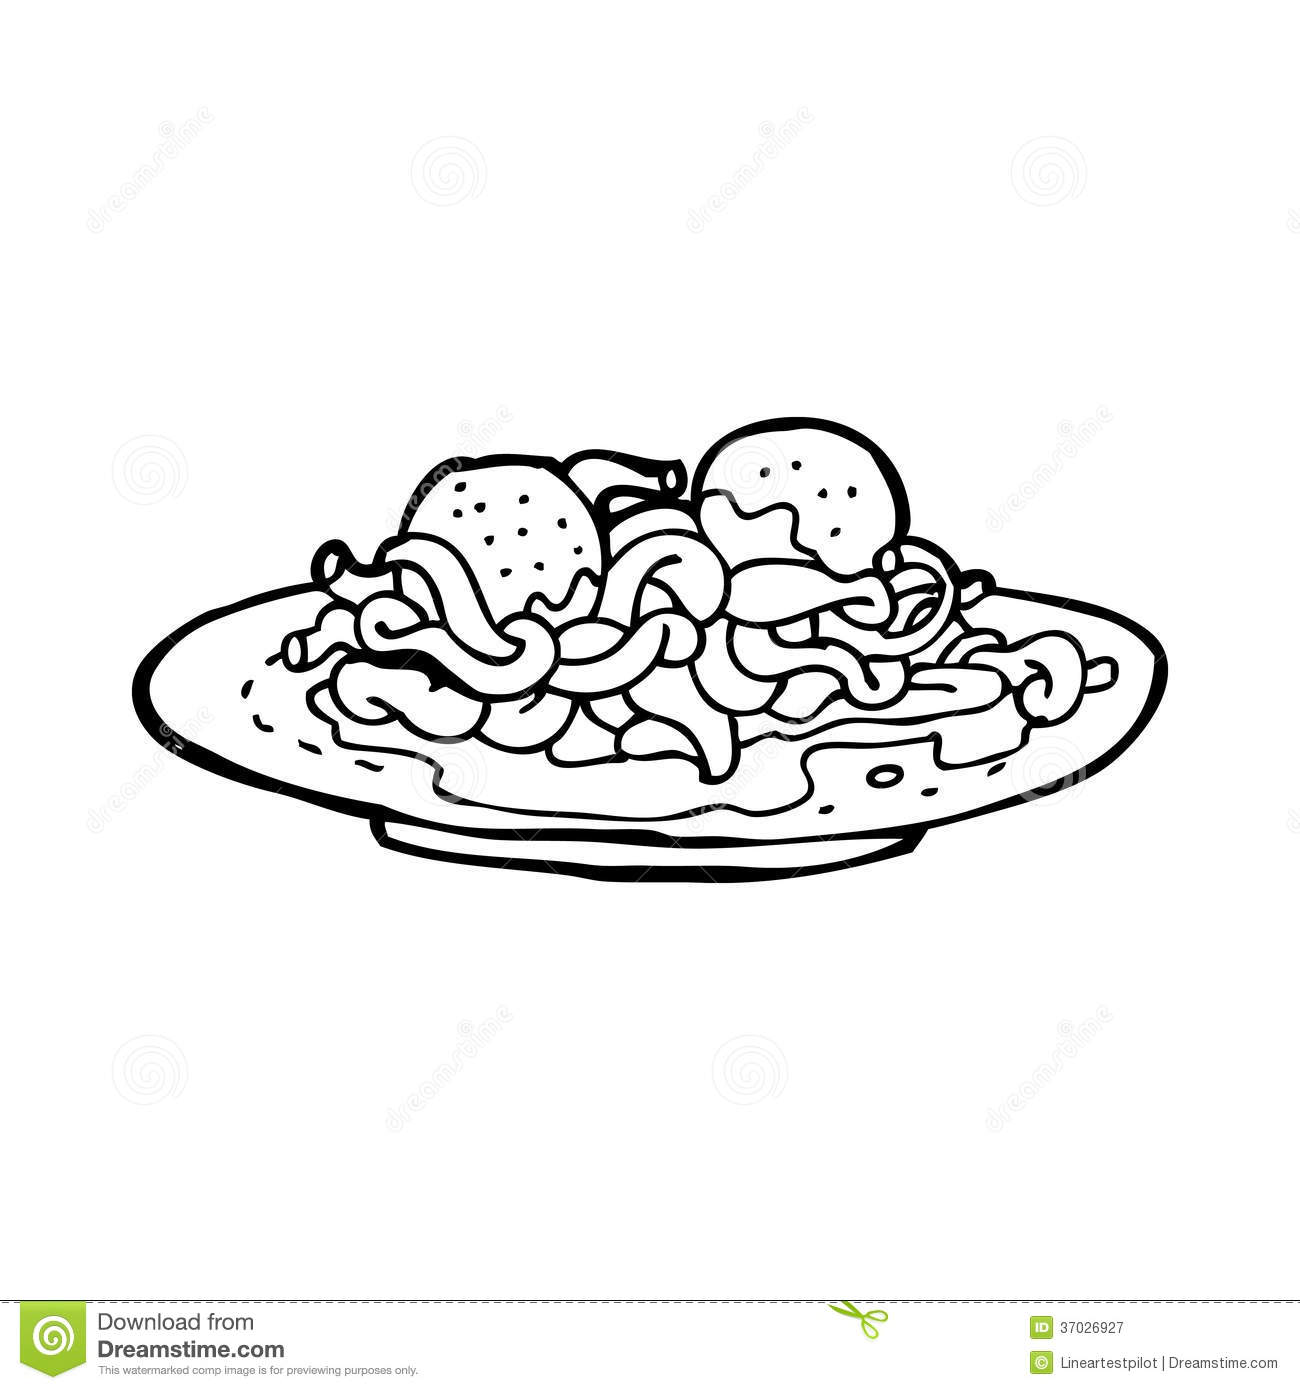 Spaghetti And Meatballs Coloring Pages